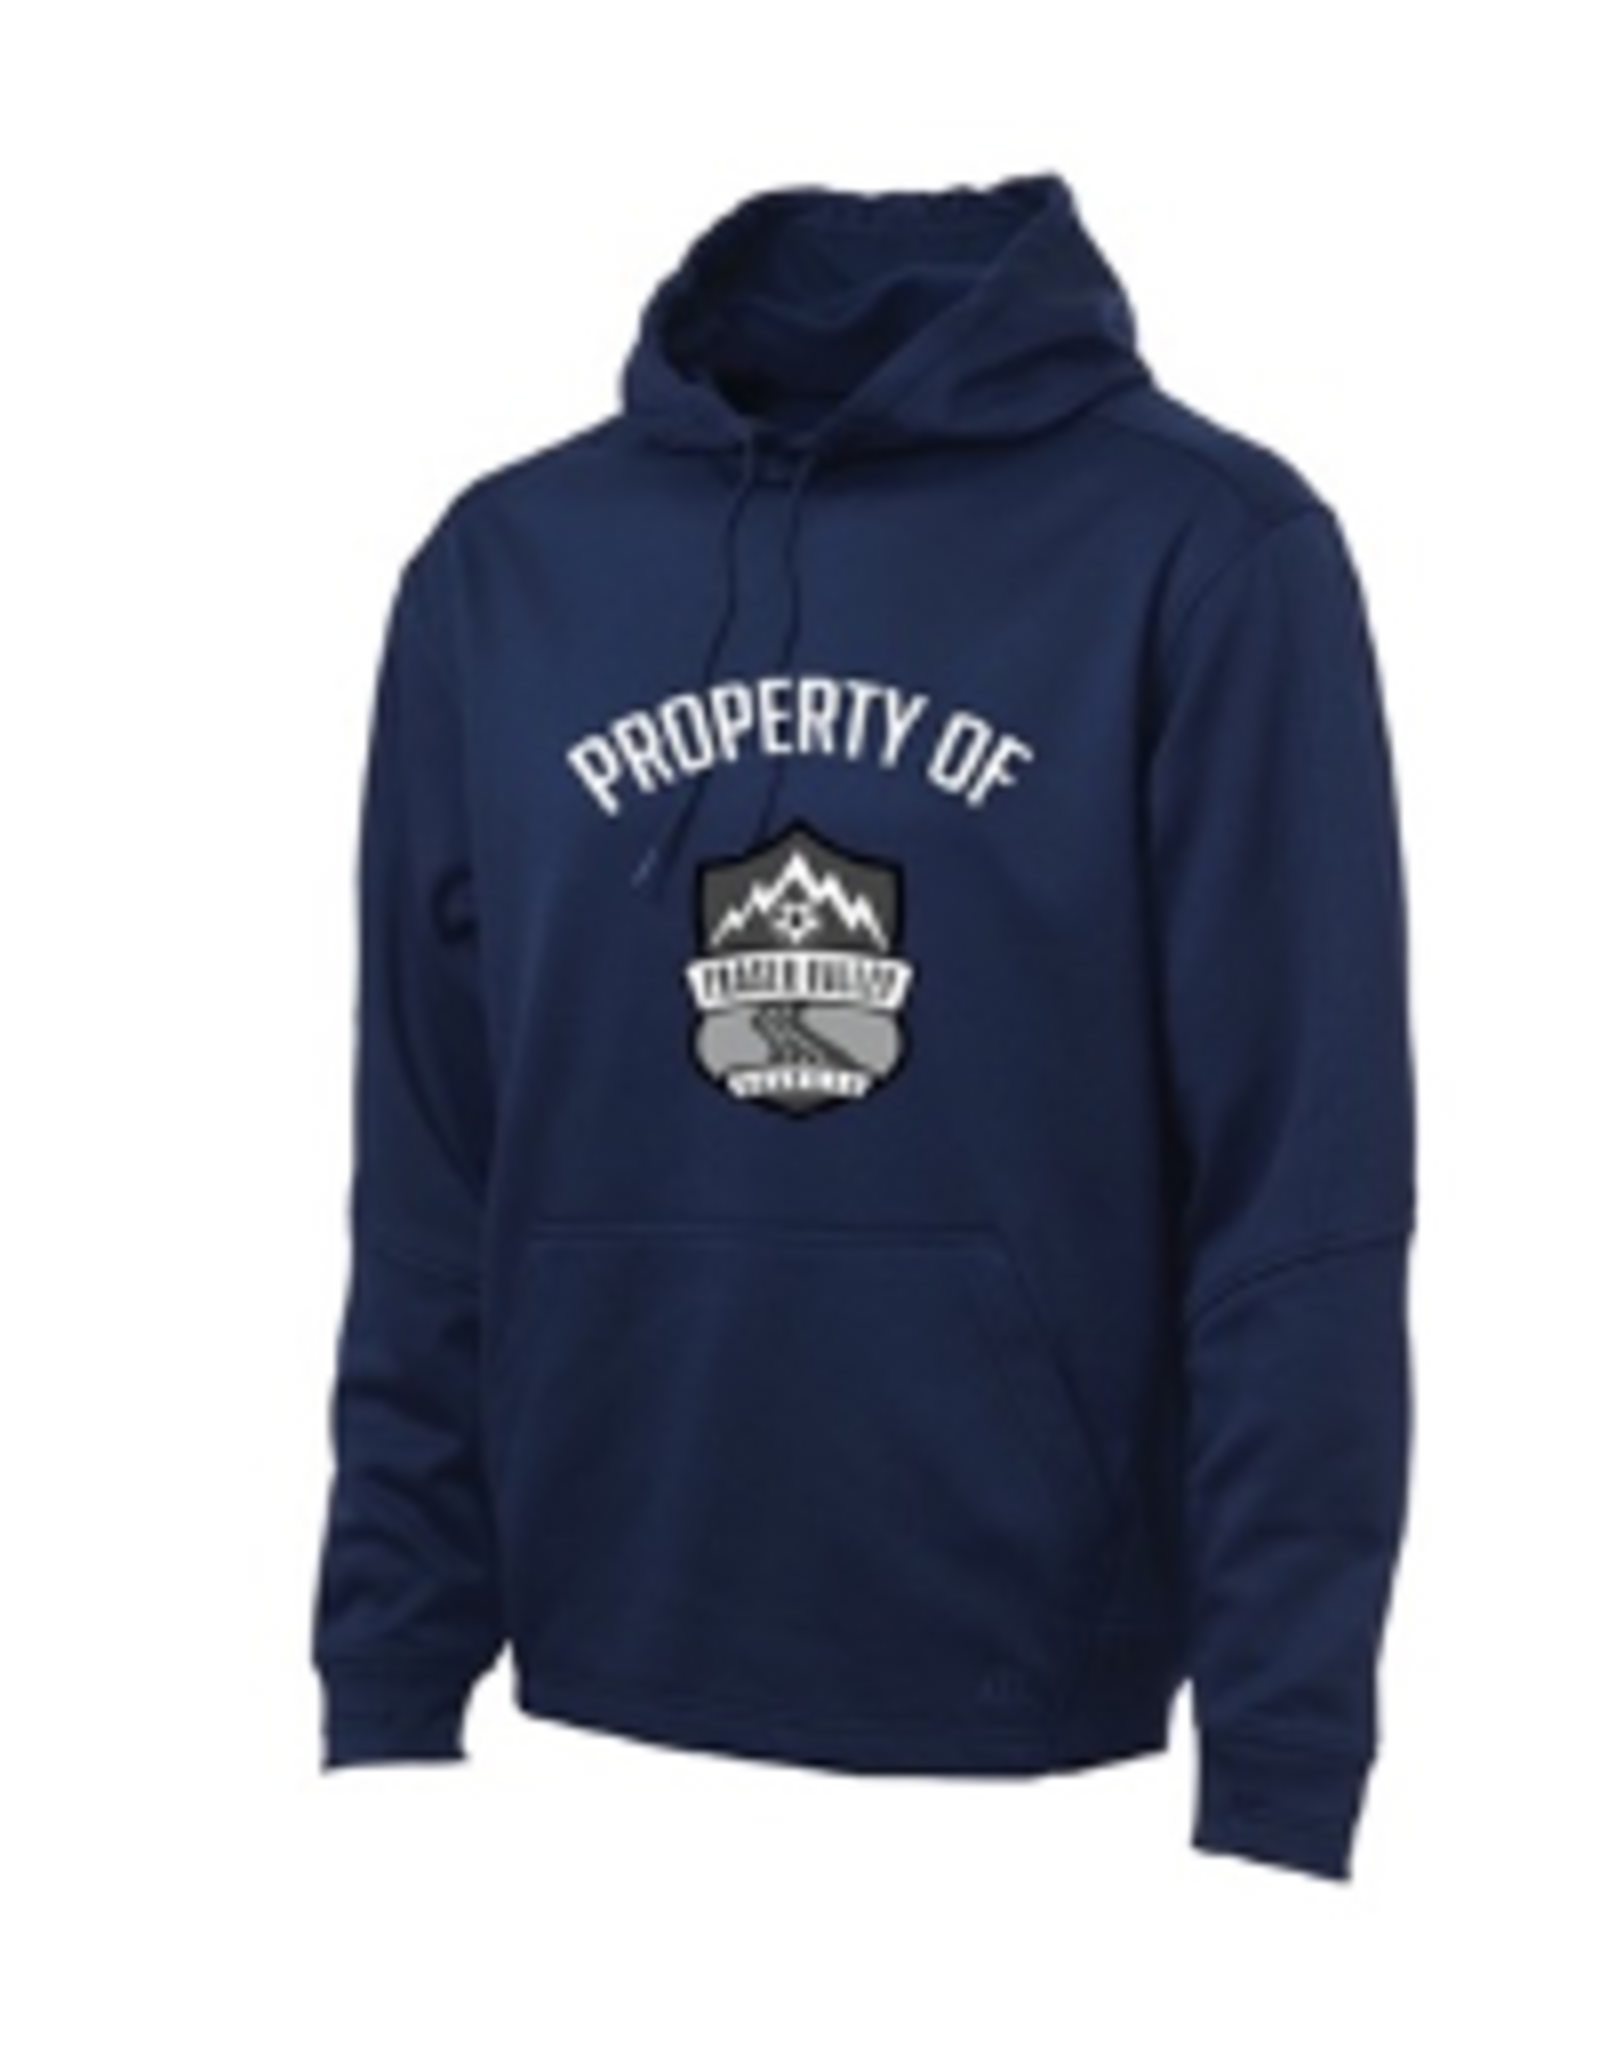 The Authentic T-Shirt Company FRASER VALLEY SELECTS PROPERTY OF HOODY